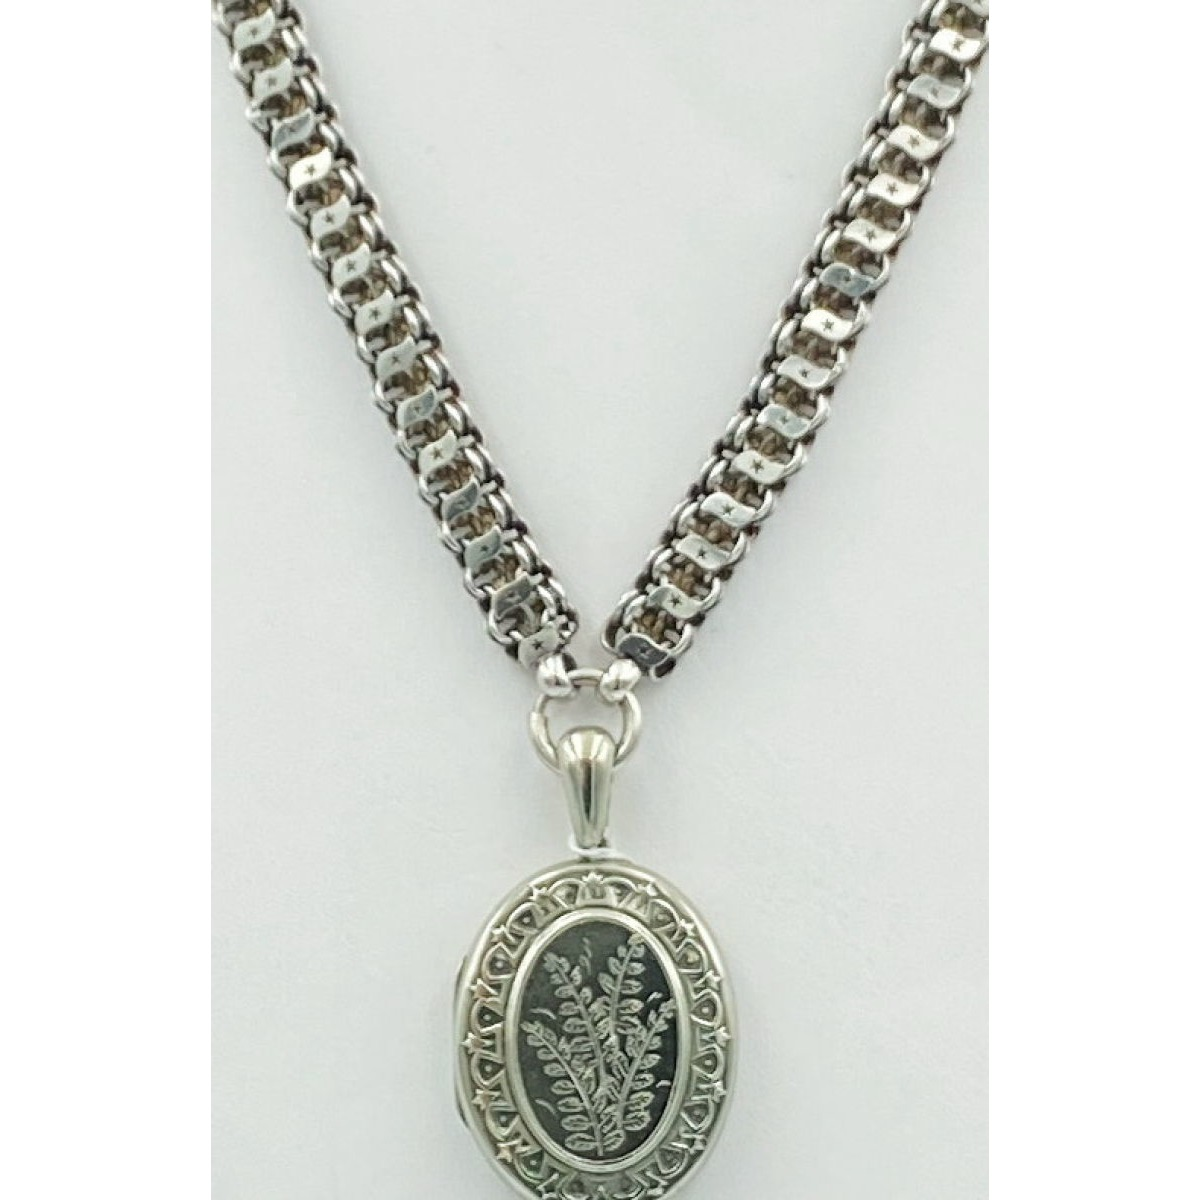 Wonderful Polished Star Cutwork Applied Swirl Antique English Victorian Silver Bookchain - Chain Only